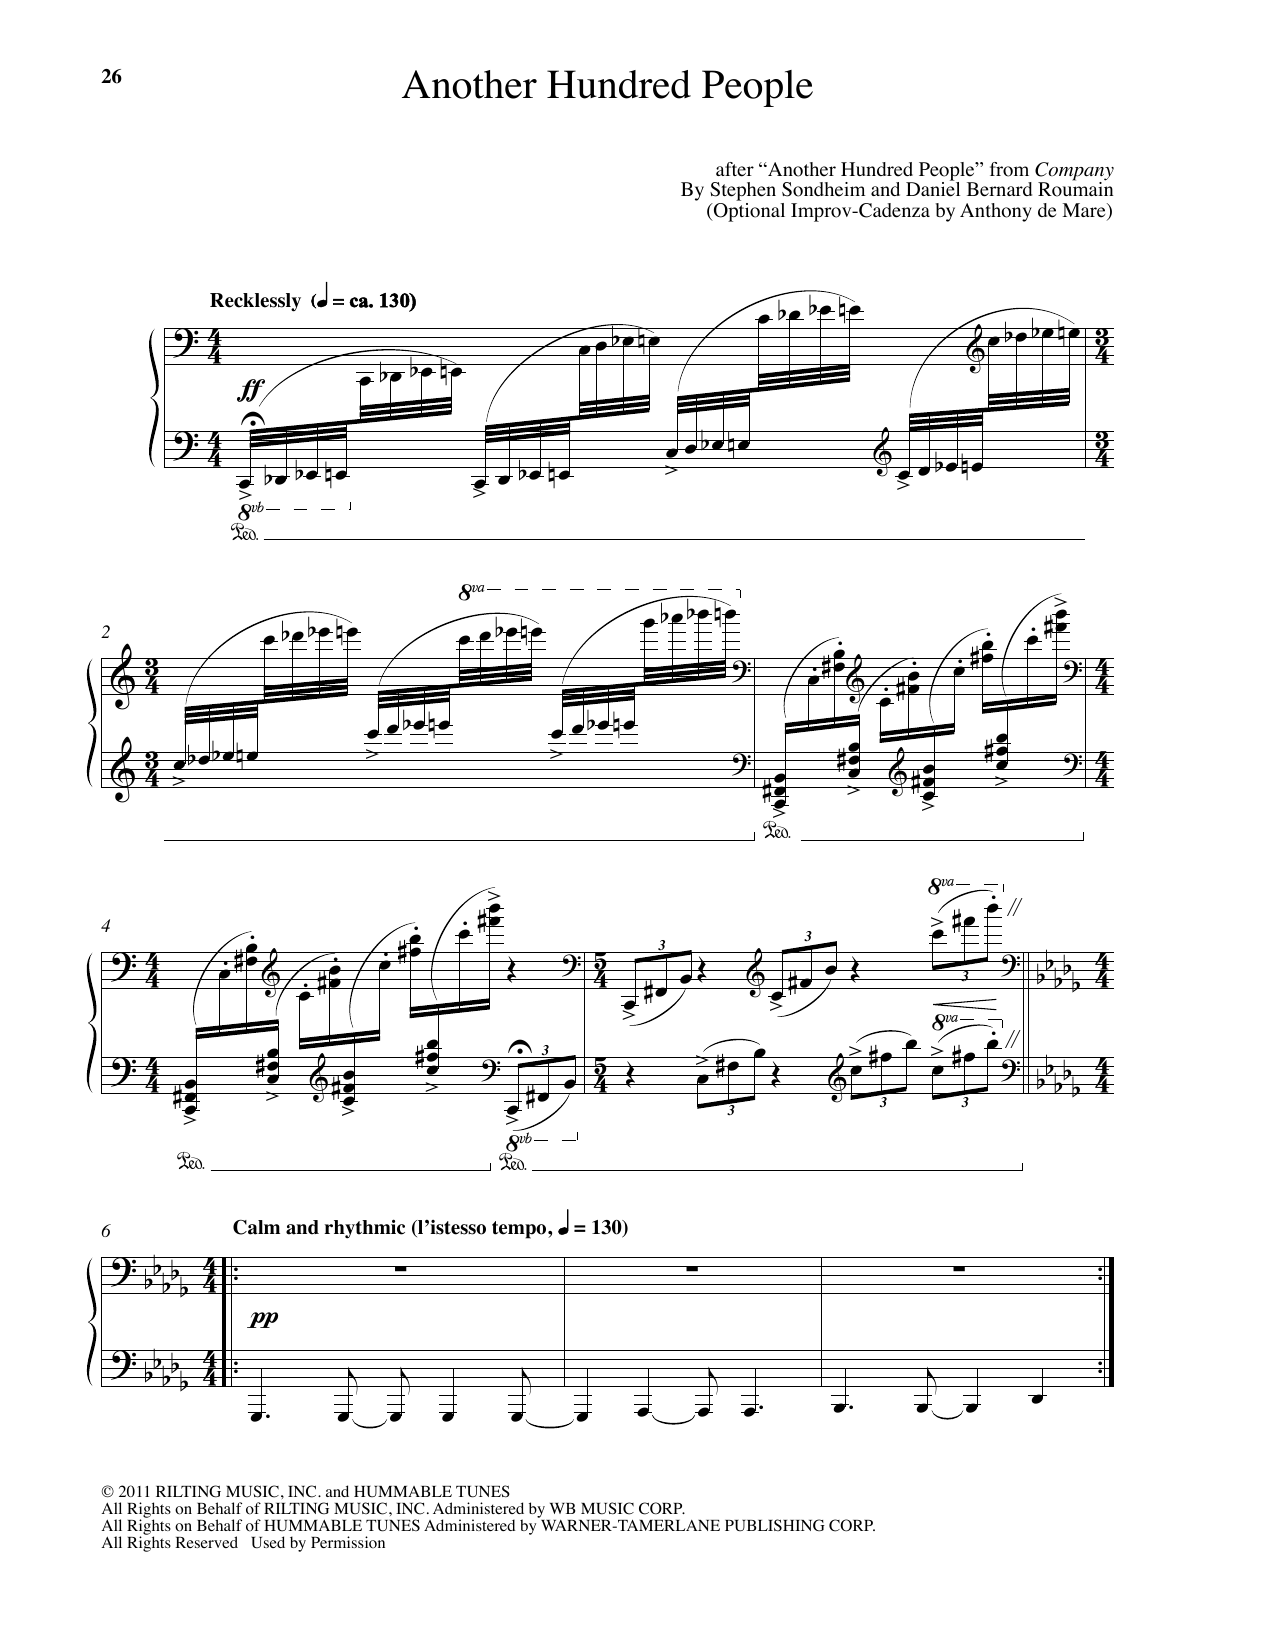 Download Stephen Sondheim 'Another Hundred People (arr. Daniel Bernard Roumain)' Digital Sheet Music Notes & Chords and start playing in minutes